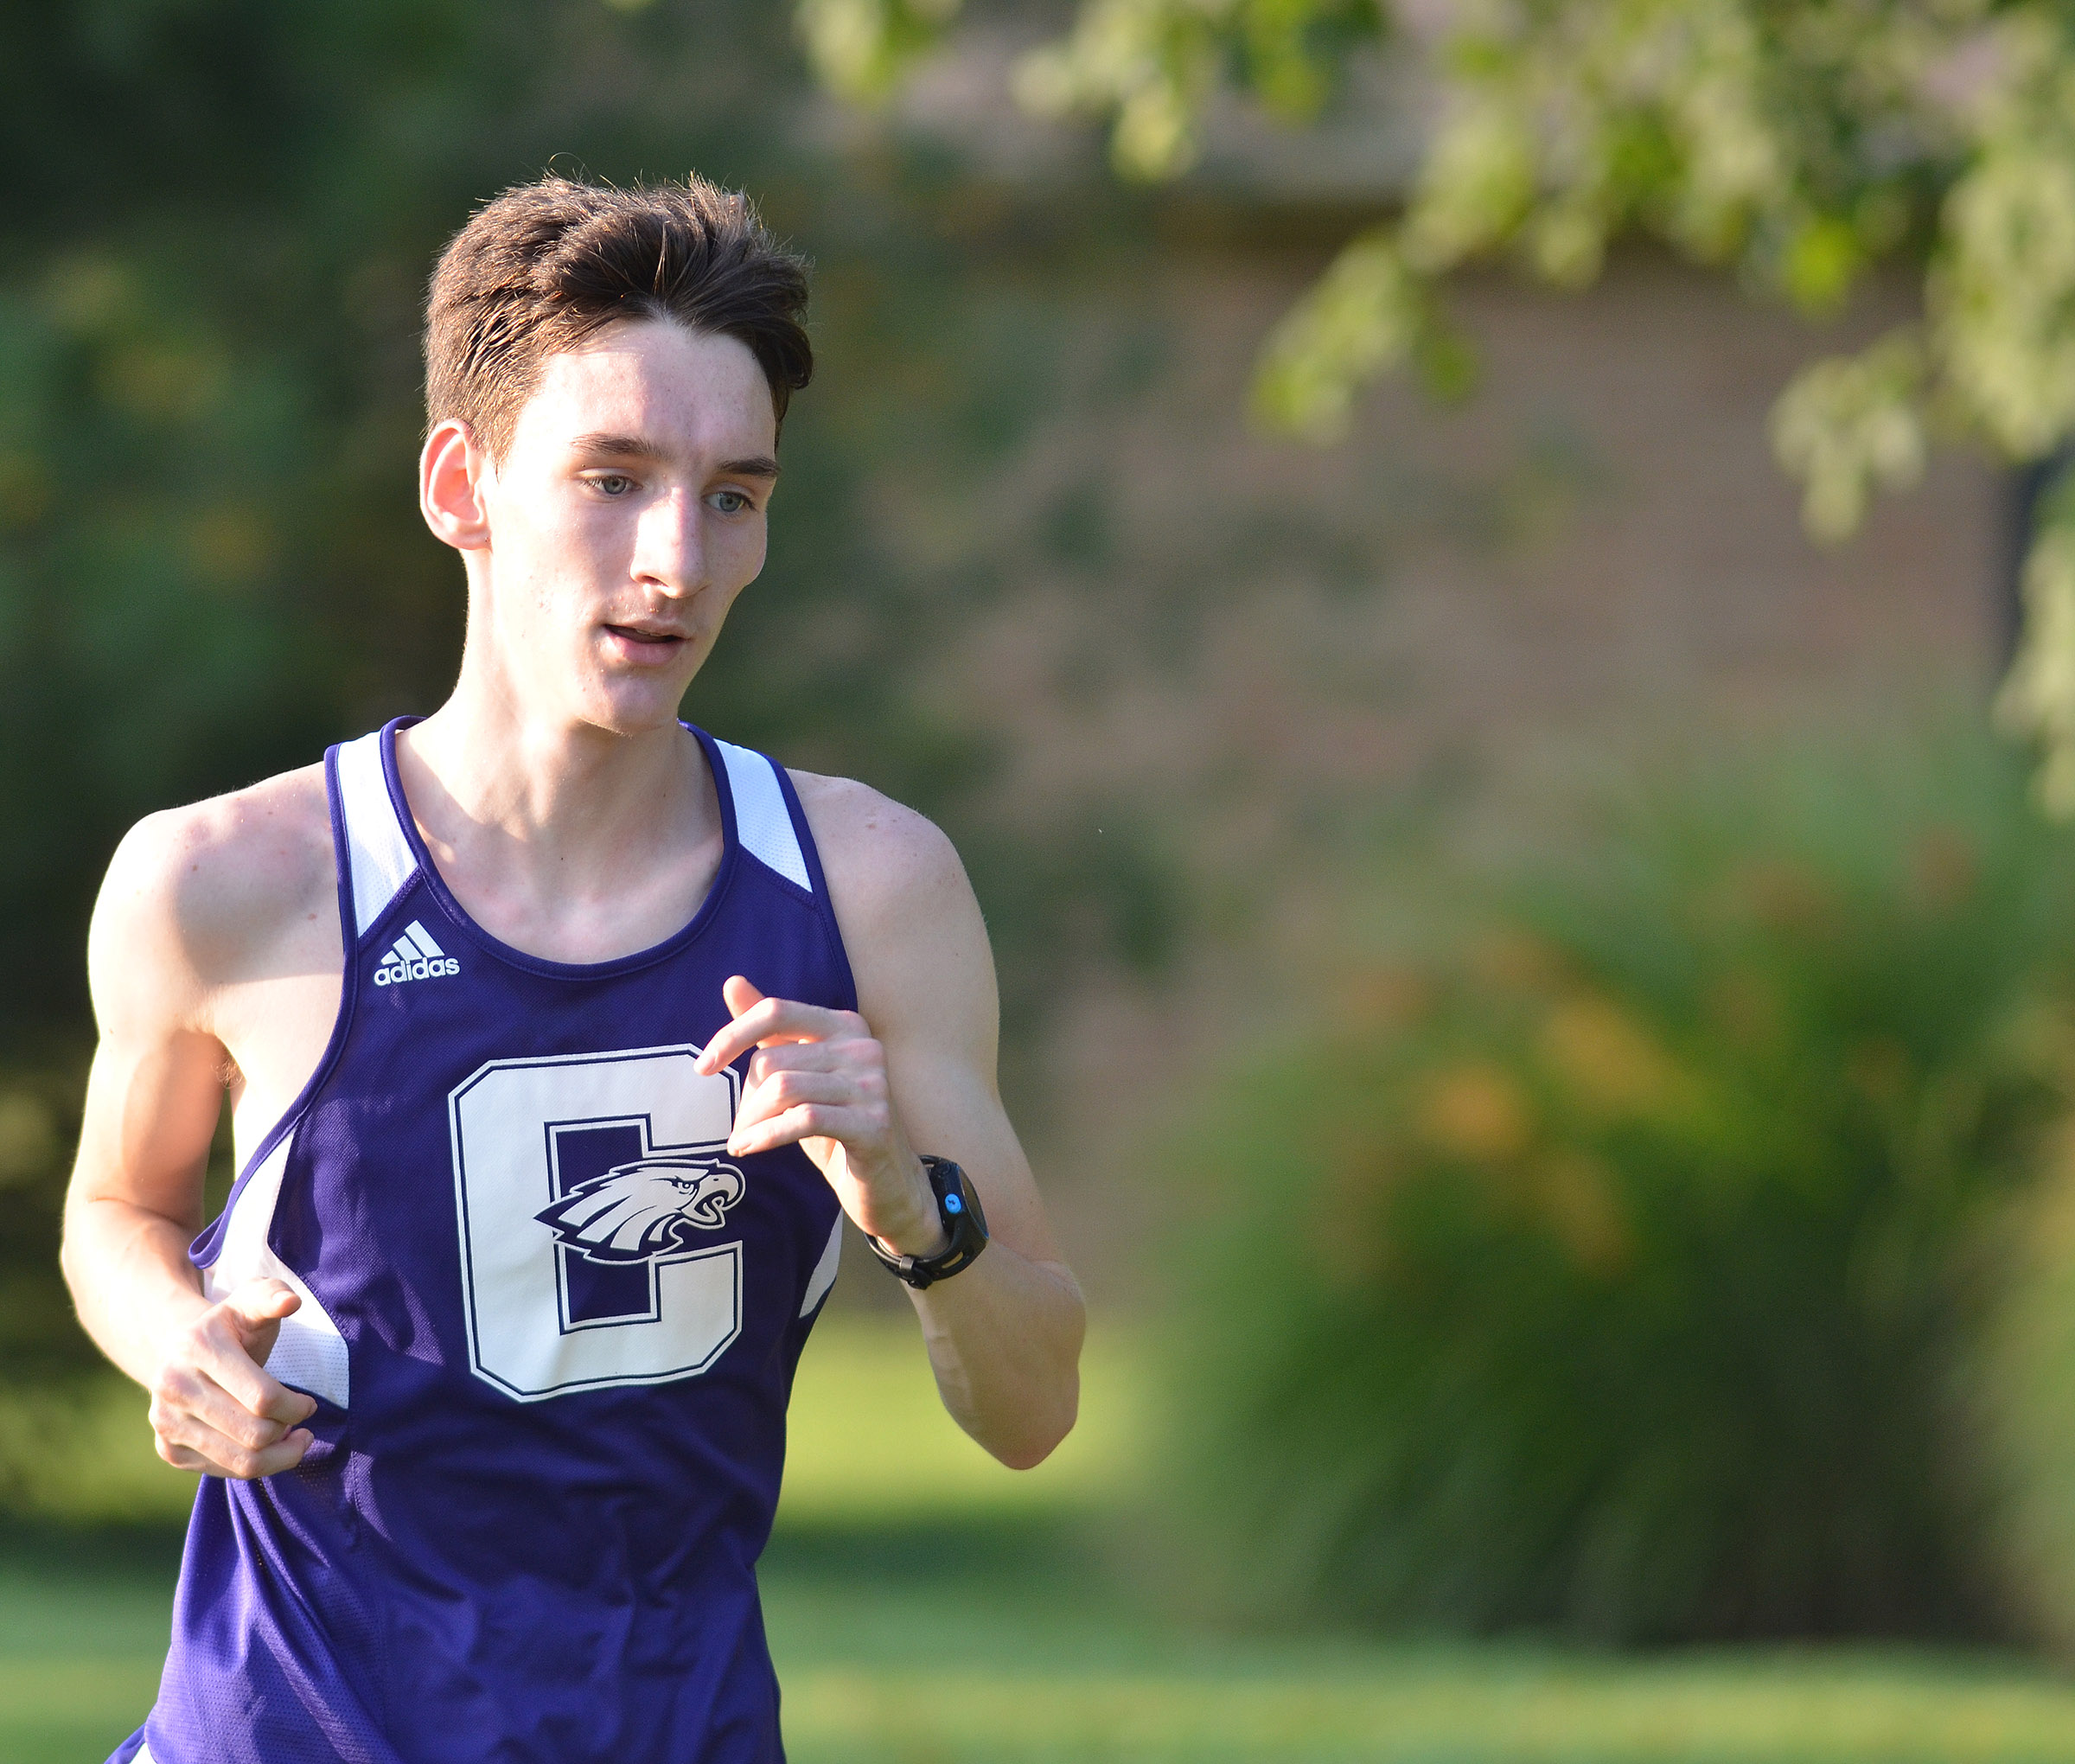 CHS junior Ian McAninch runs.